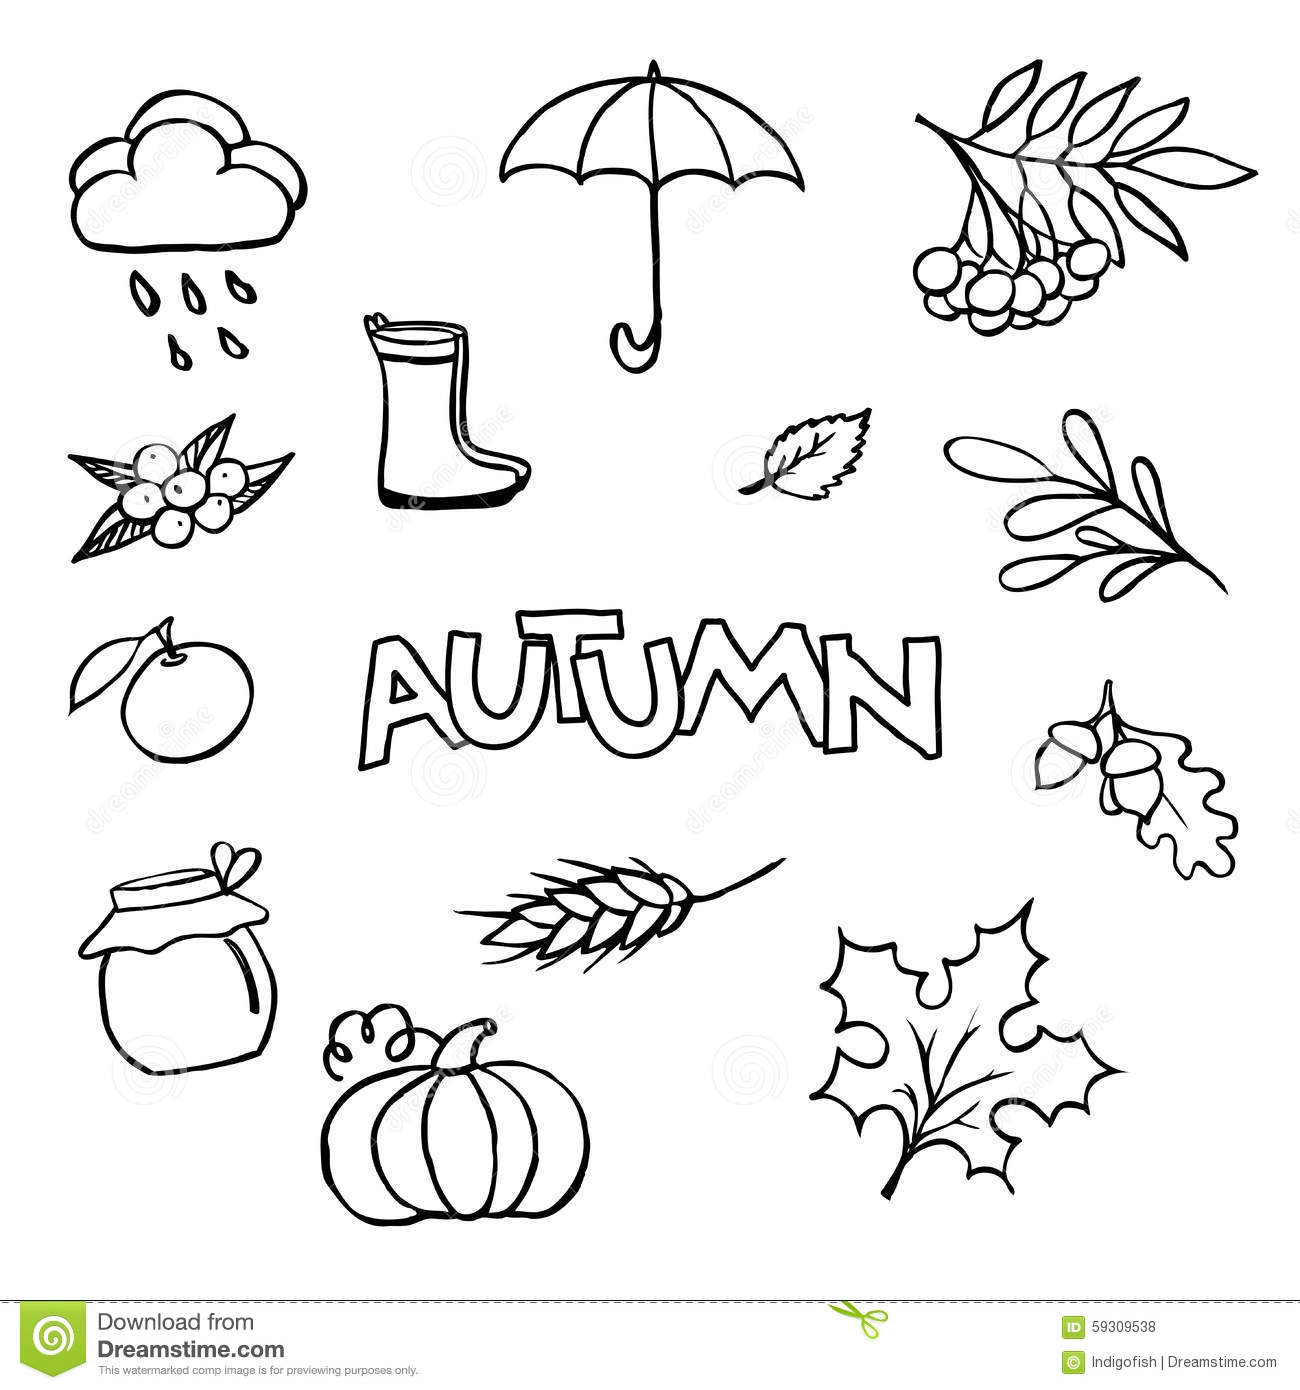 Sketchy Vector Hand Drawn Doodle Cartoon Set Of Objects On The A Stock Vector